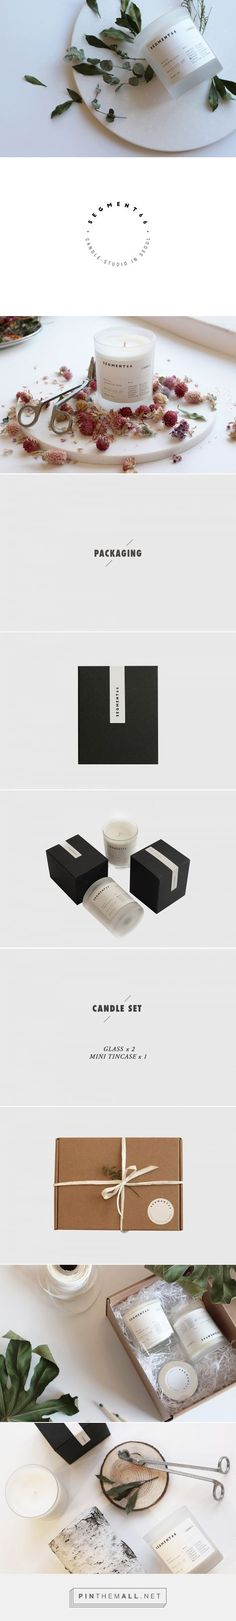 Segment66 Candle Branding and Packaging by Haeyeong Park | Fivestar Branding Agency – Design and Branding Agency & Curated Inspiration Gallery